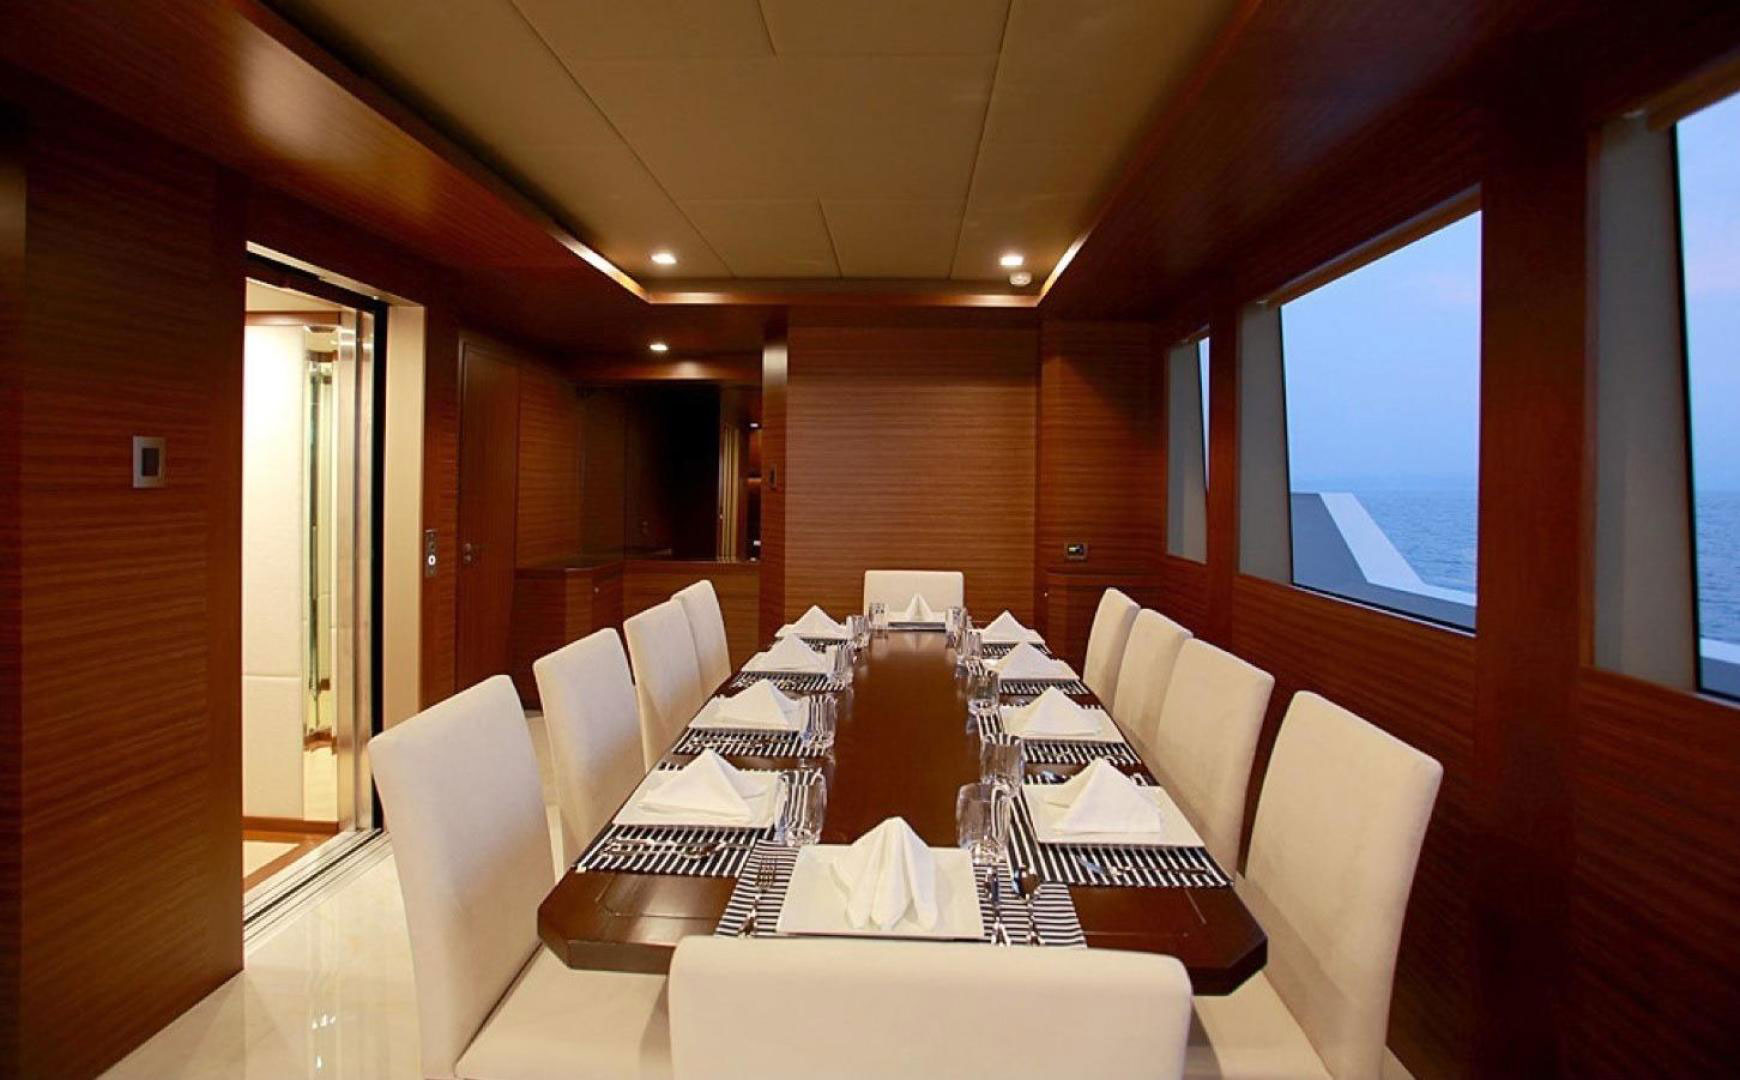 150-ft.-Luxury-Power-Yacht-–-Up-to-200-People - dining